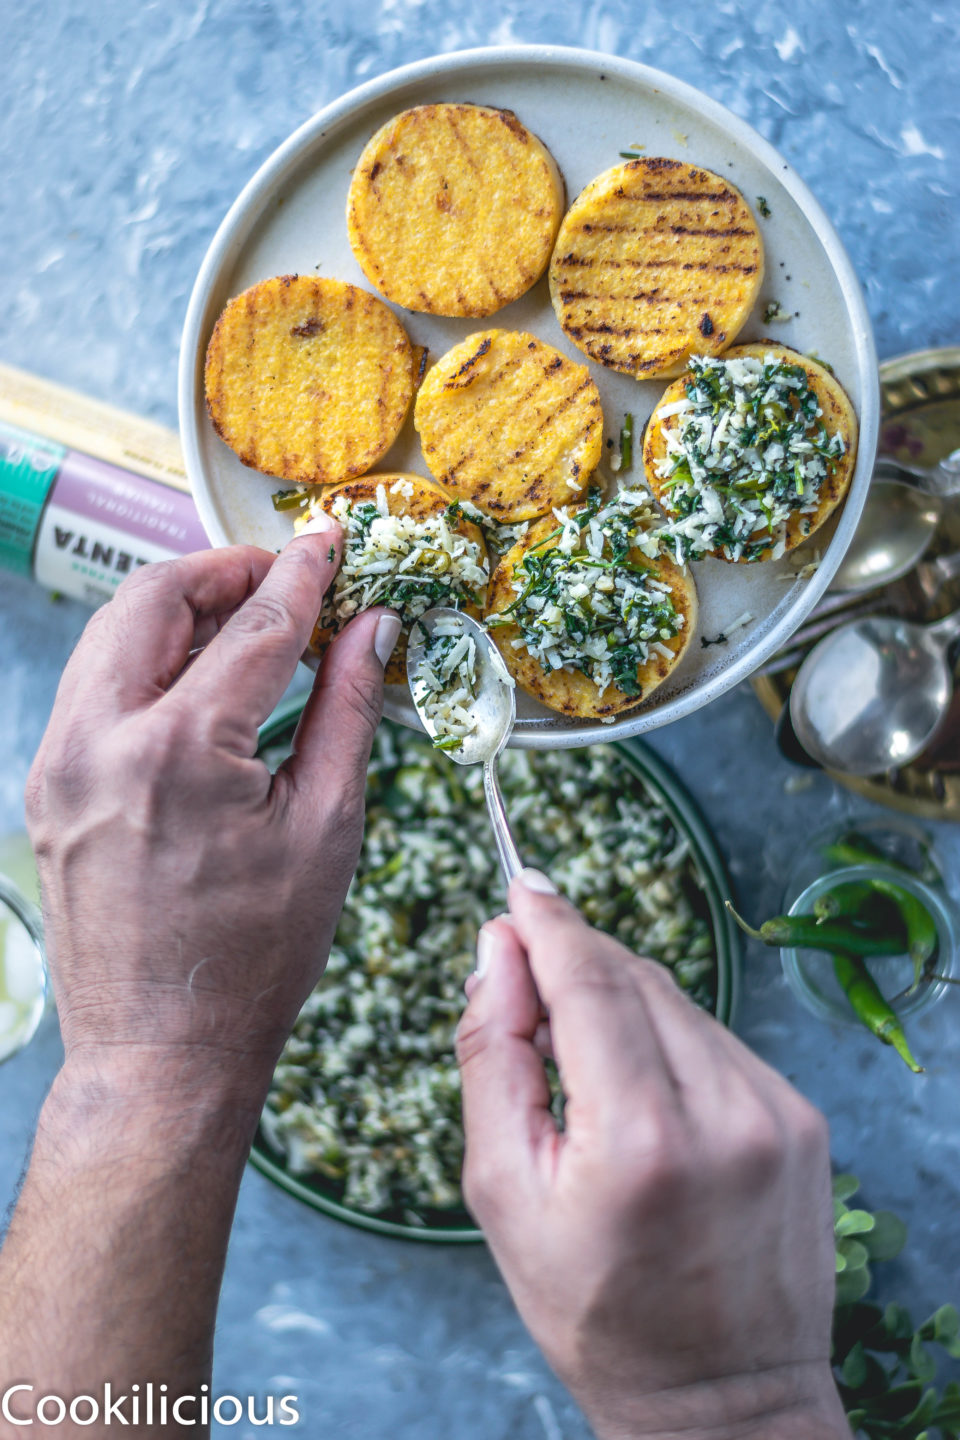 a set of hands spreading the masala over the grilled polenta